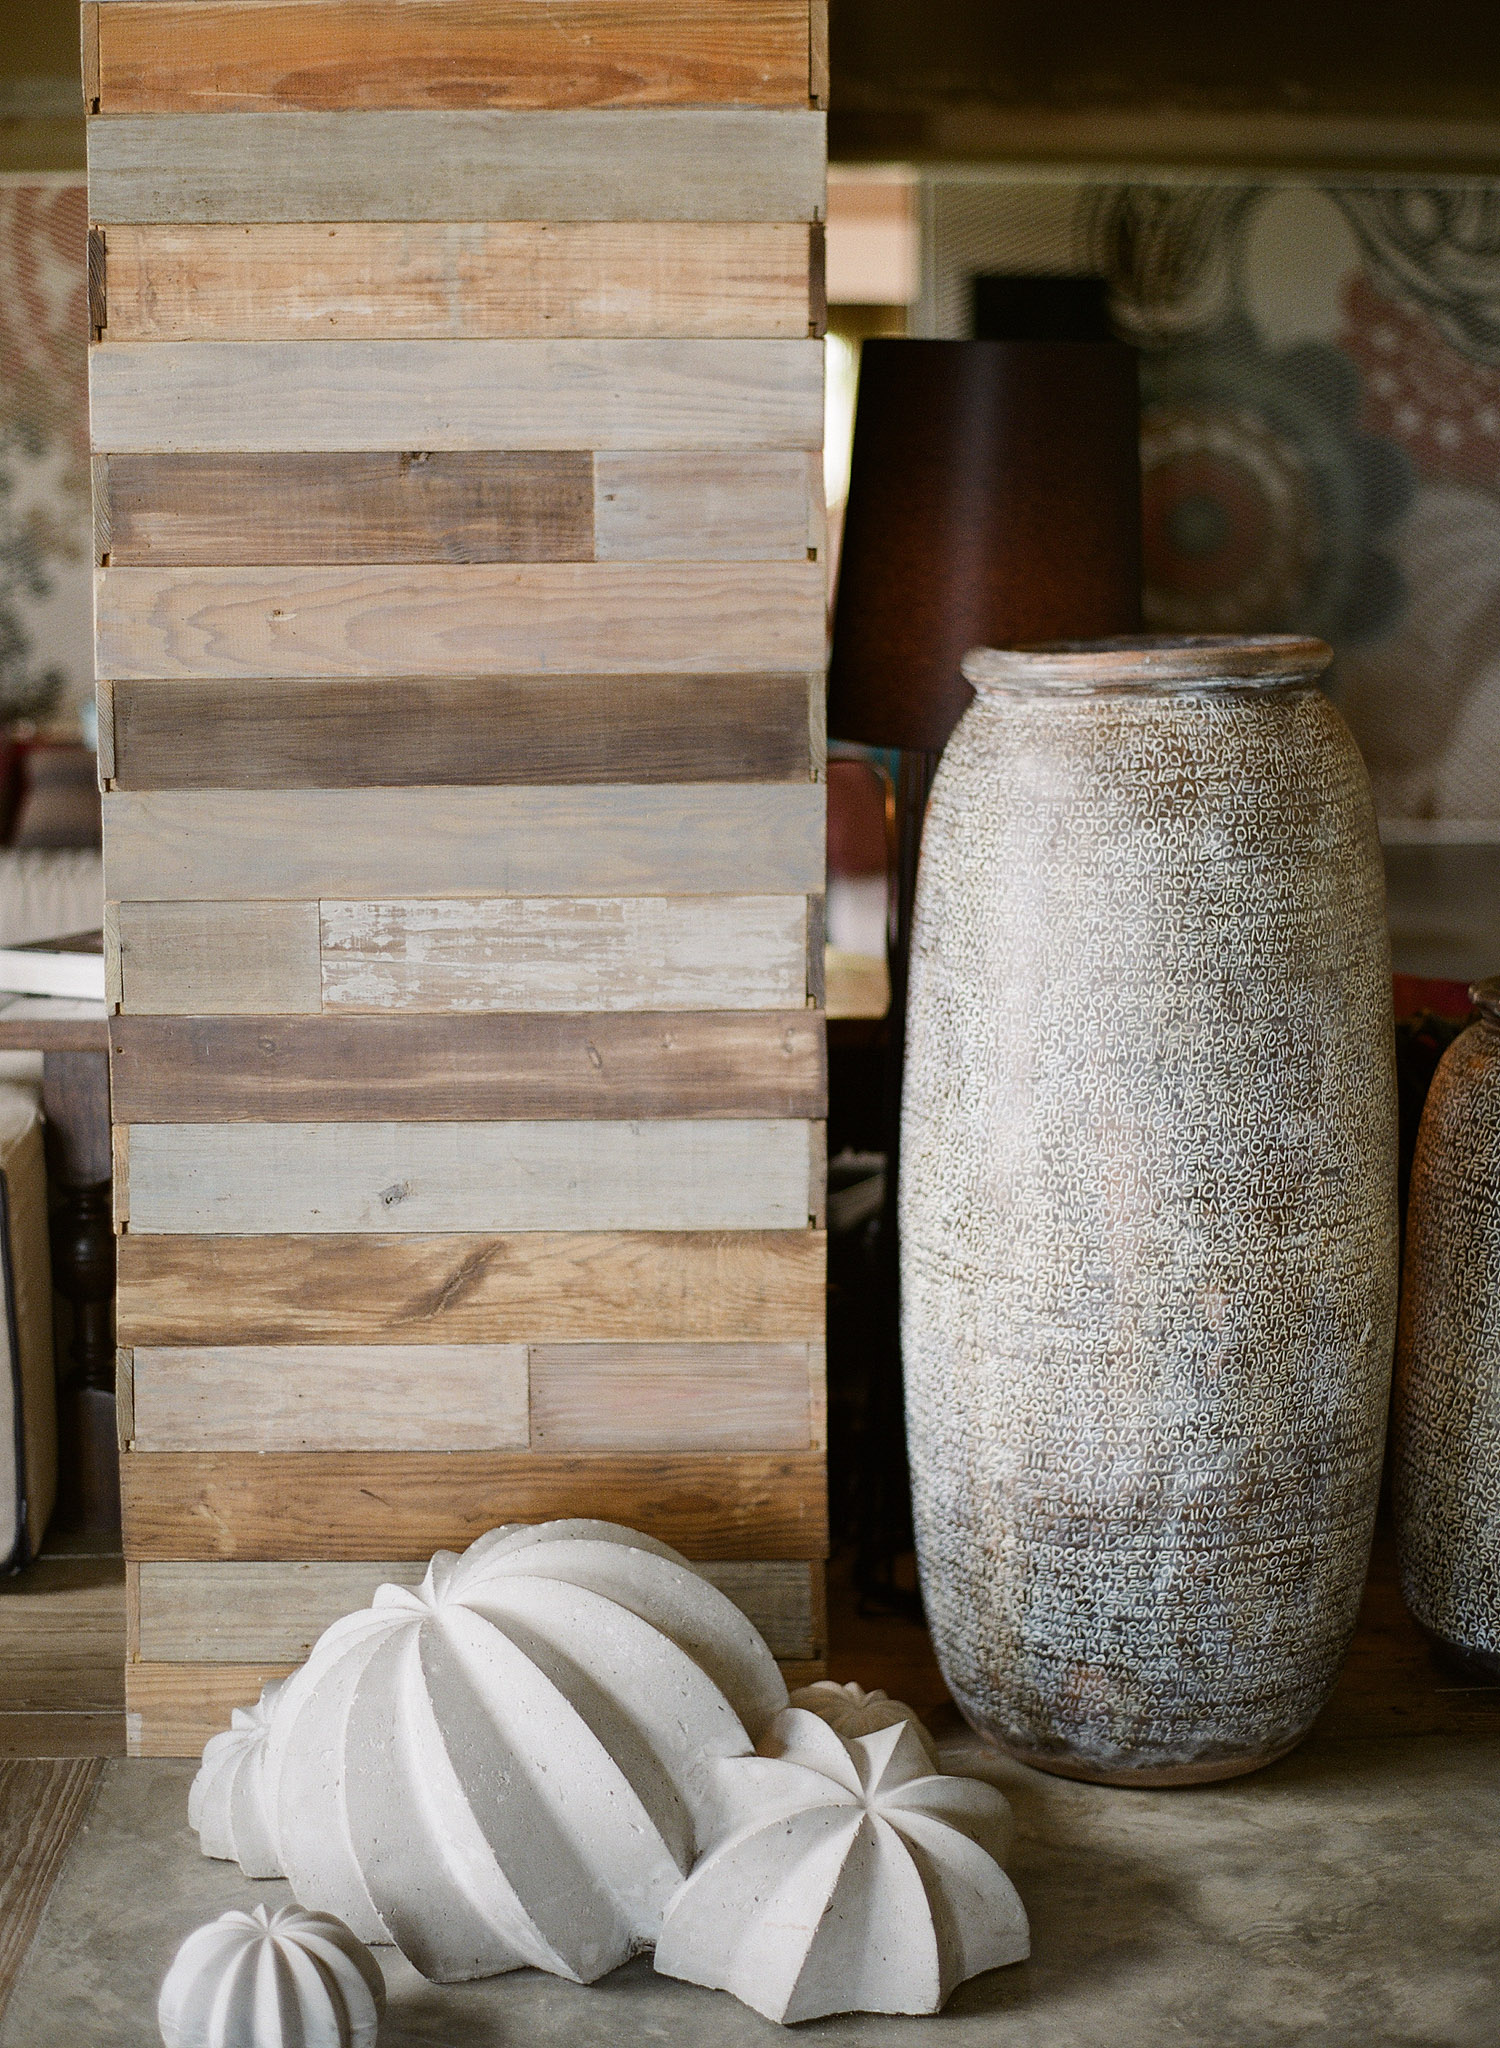 Destination Wedding Photographer Lexia Frank photographs this modern wedding at the W hotel in vieques island wedding- inside the W hotel there are modern cement sculptures and reclaimed wood walls. Lexia is a wedding film photographer focusing on destination weddings worldwide